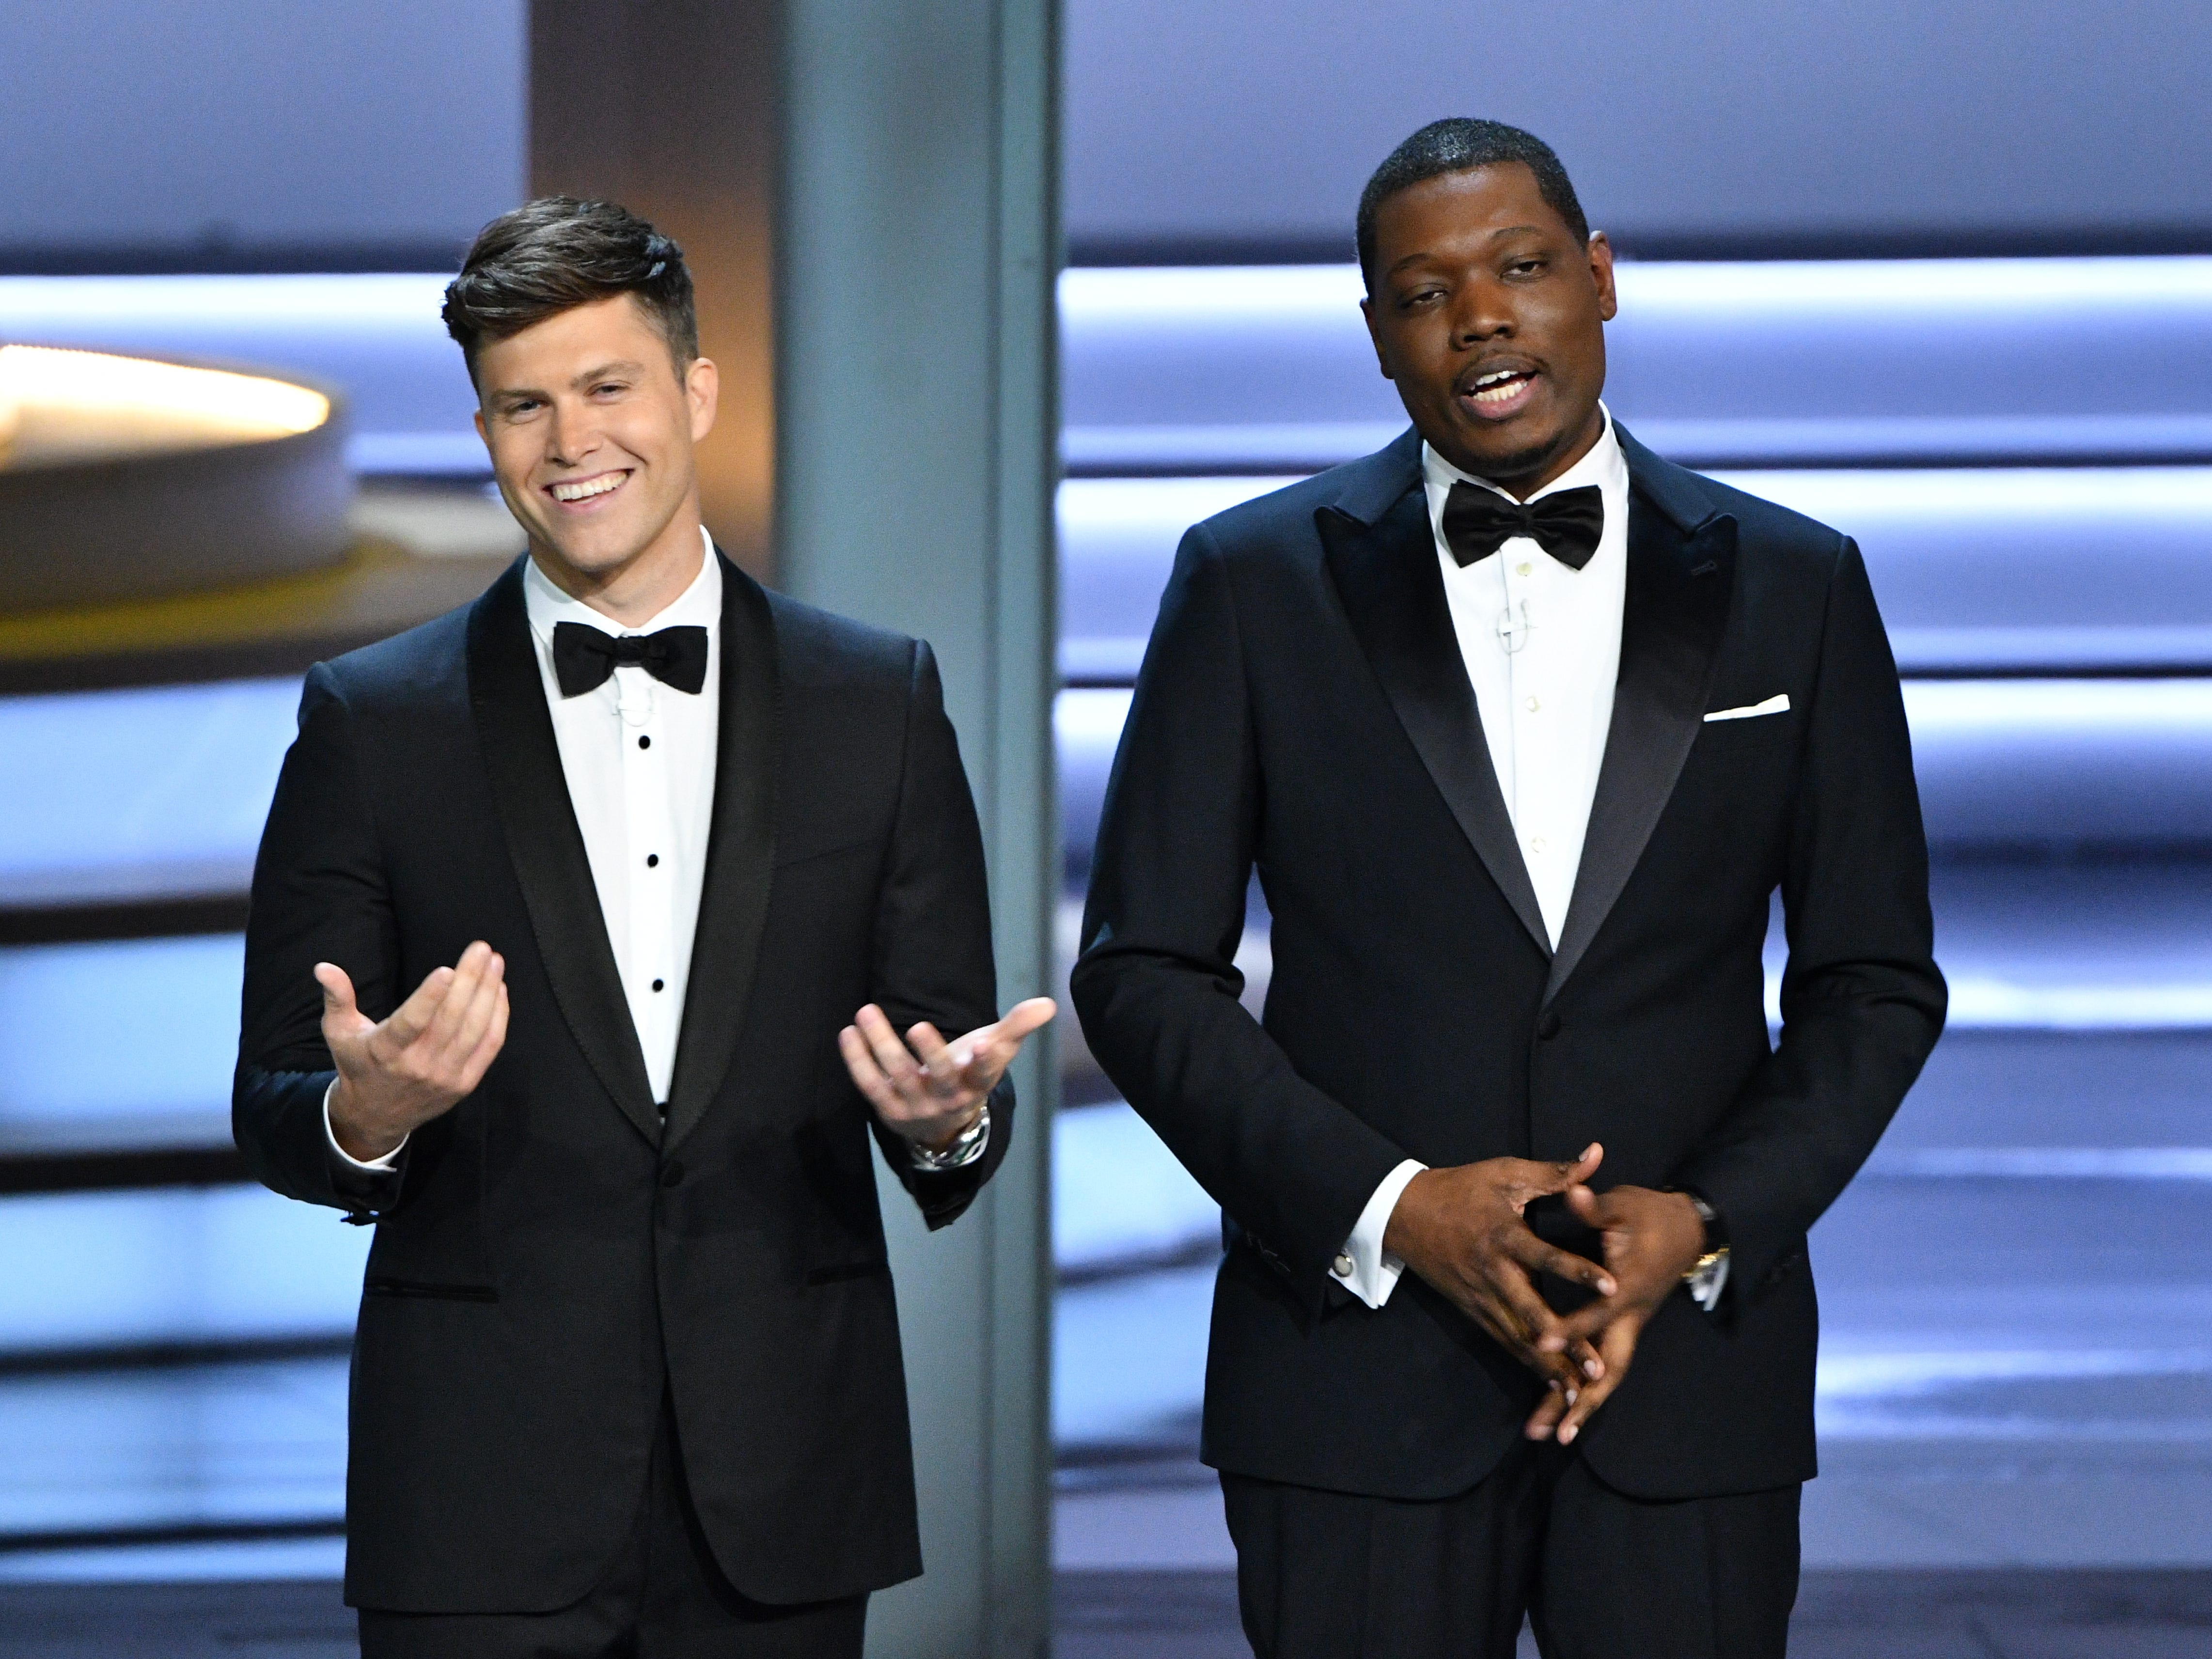 Colin Jost, left, and Michael Che speak during the show.